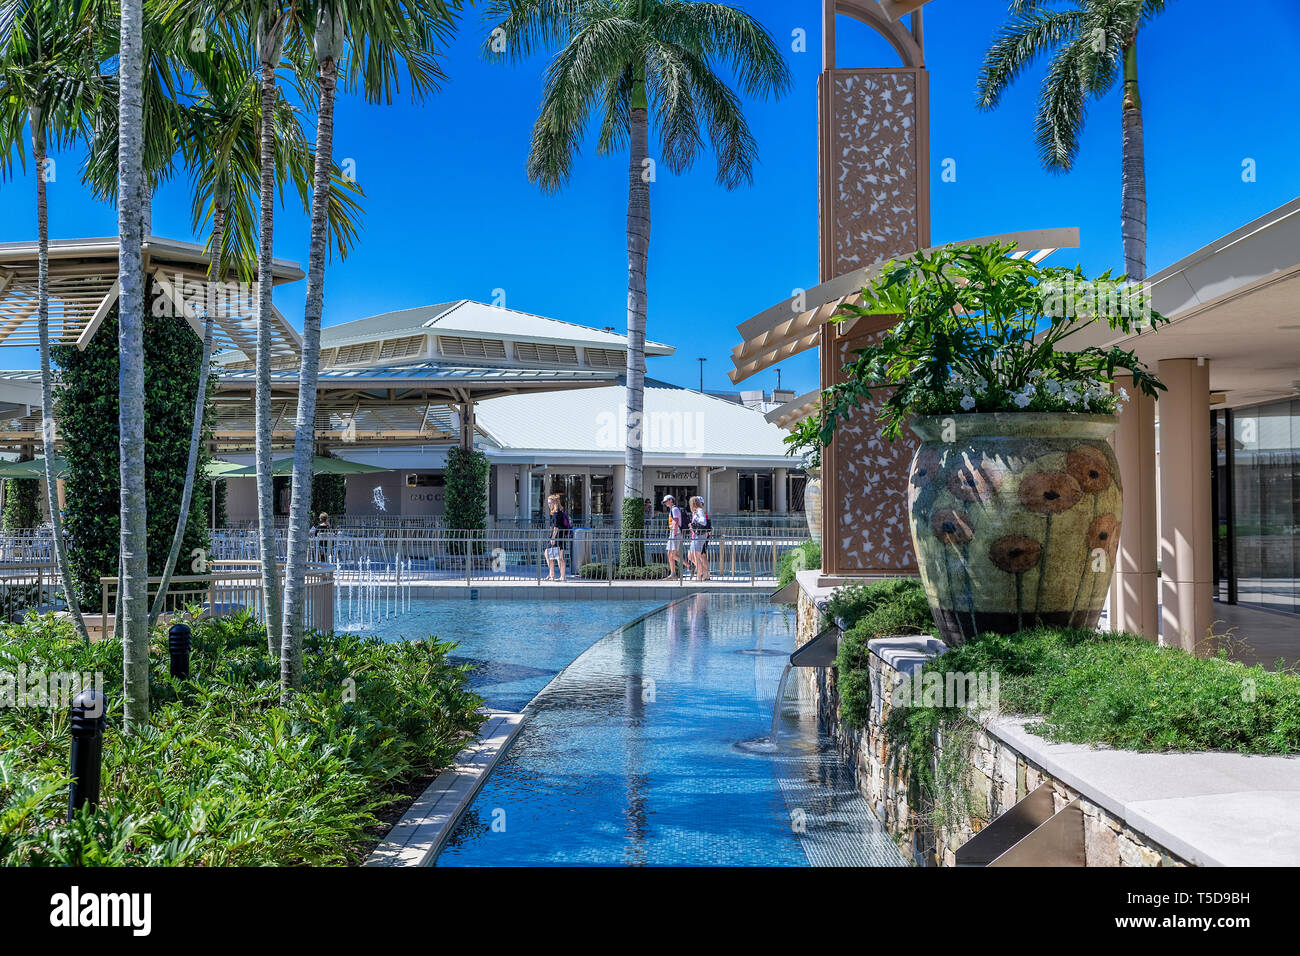 The Waterside Shops is a high end mall in Naples, Florida, USA. - Stock Image